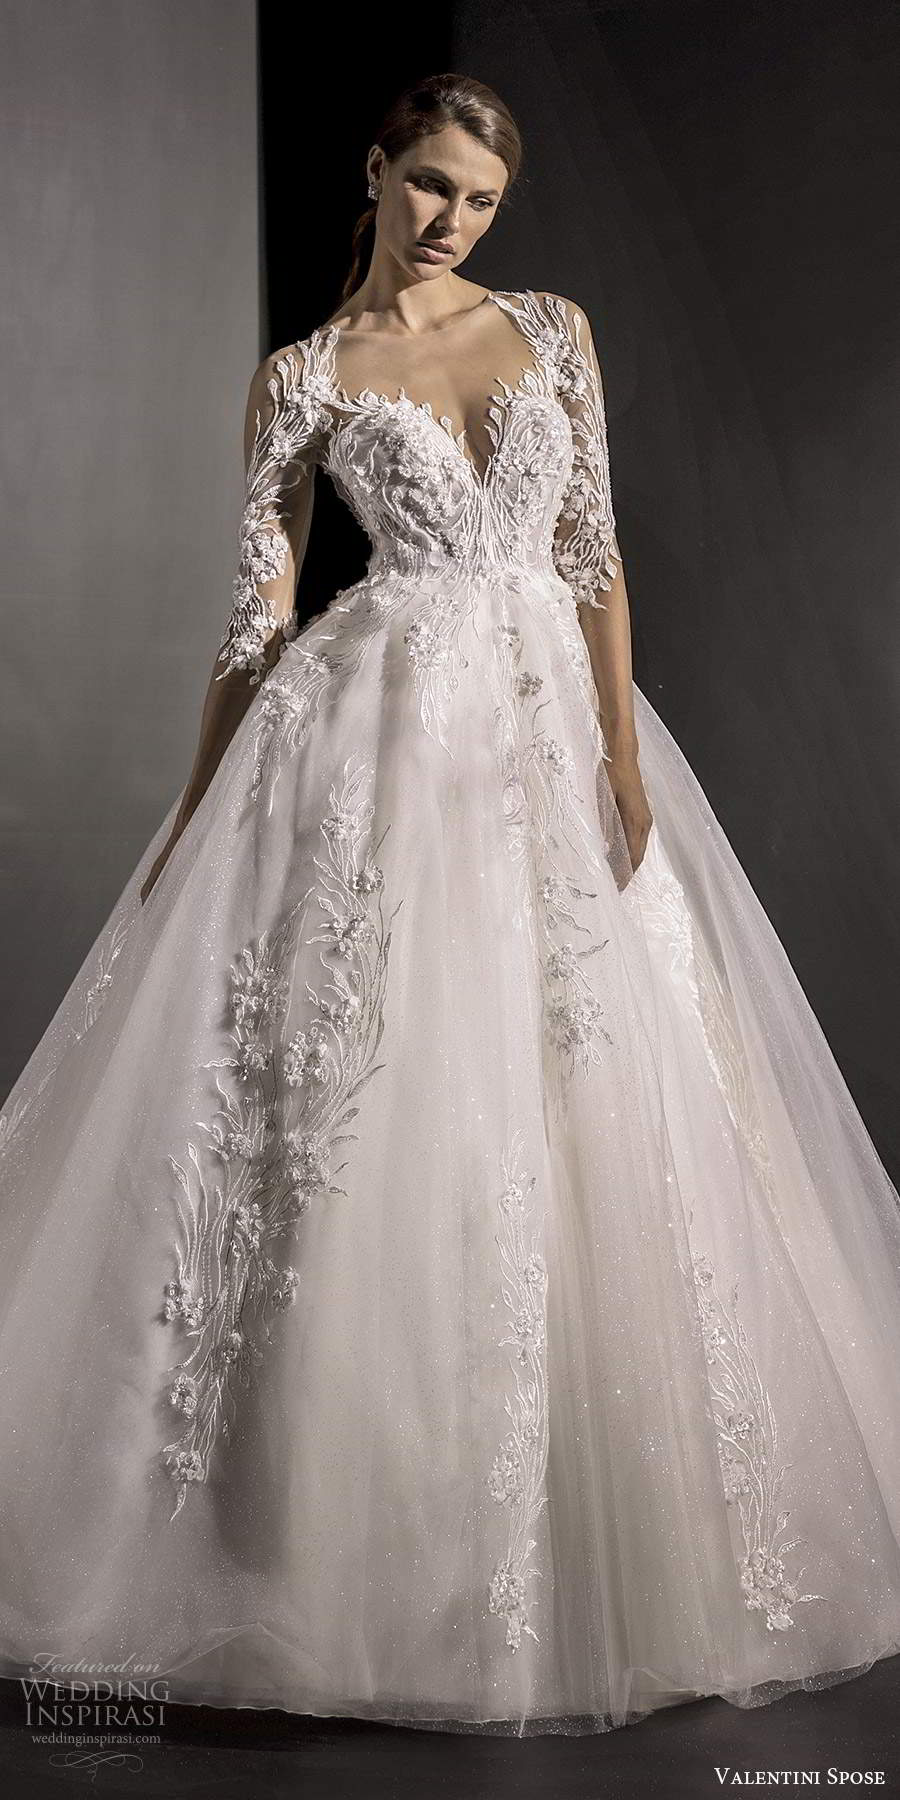 valentini spose fall 2020 bridal illusion 3 quarter sleeves queen anne neckline fully embellished lace a line ball gown wedding dress chapel train (2) mv